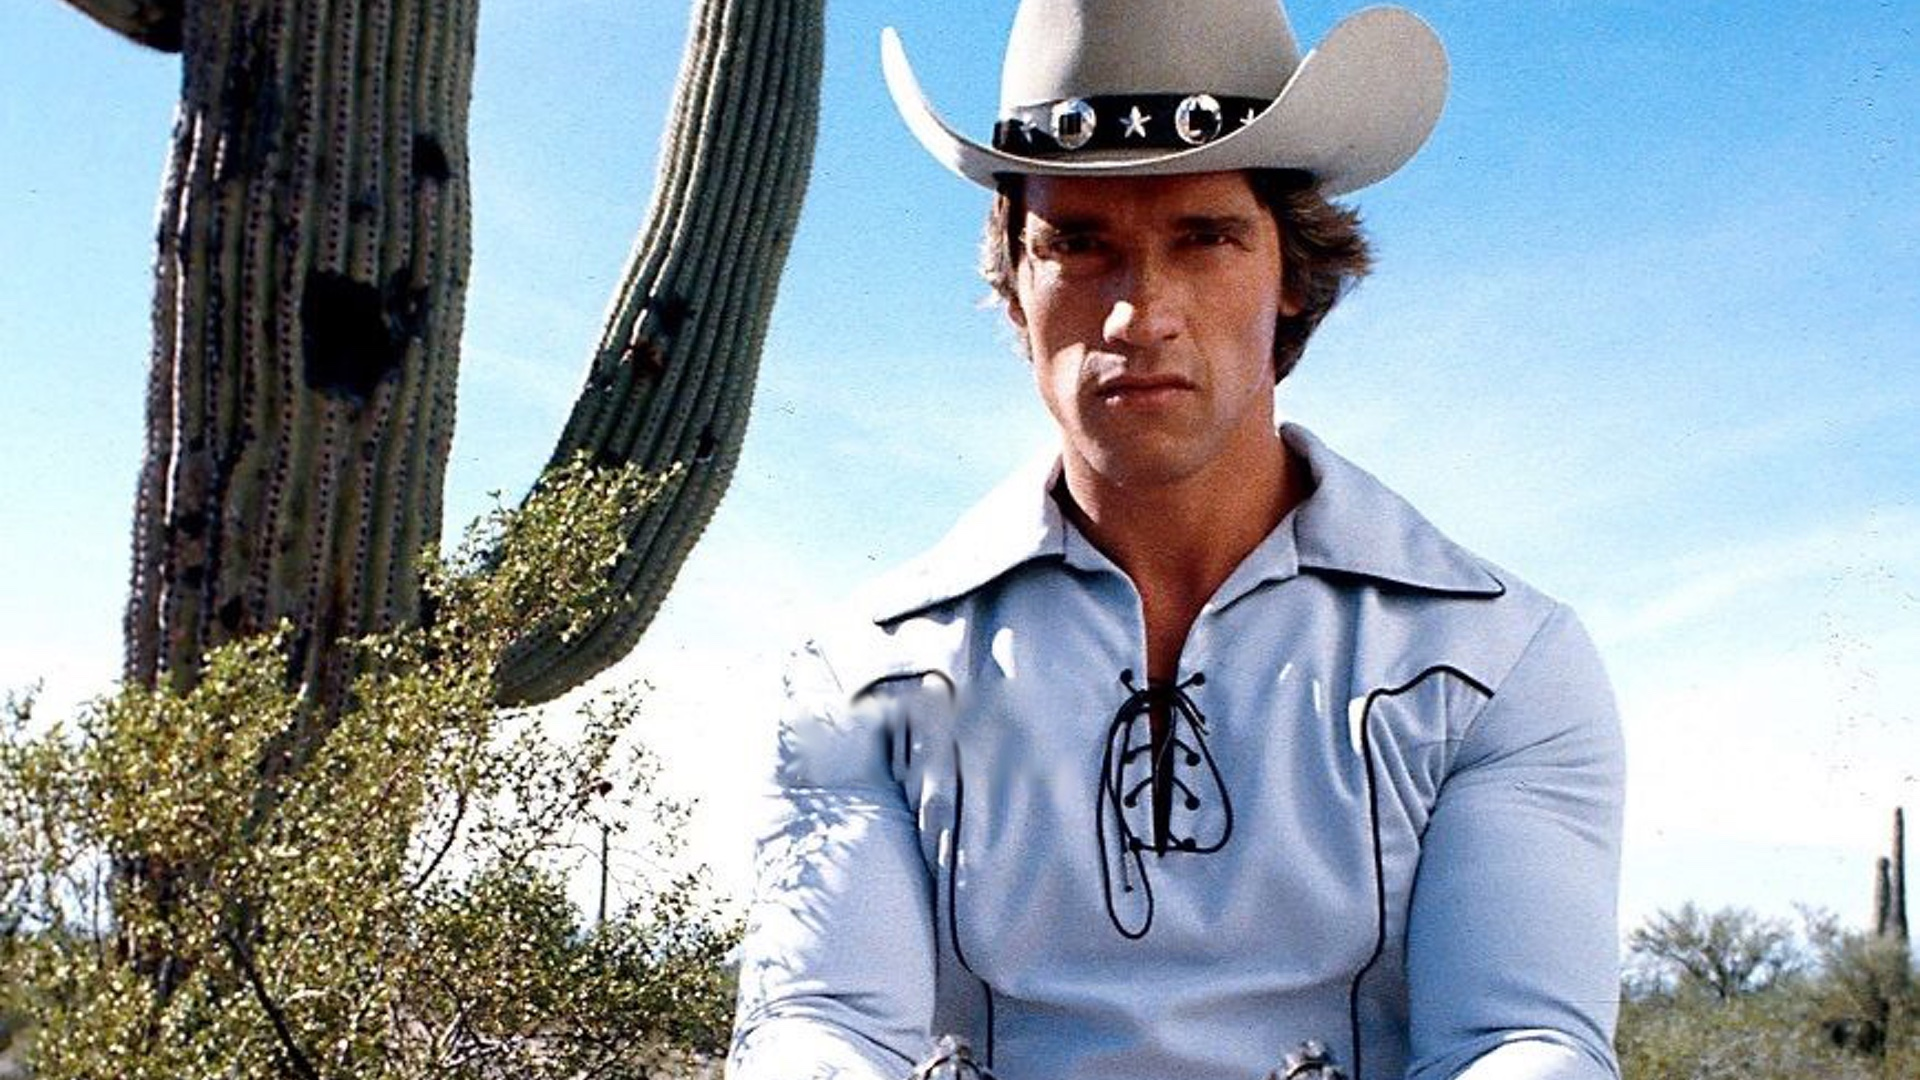 arnold-schwarzeneggeris-set-to-star-in-a-new-western-series-for-amazon-called-outrider-social.jpg